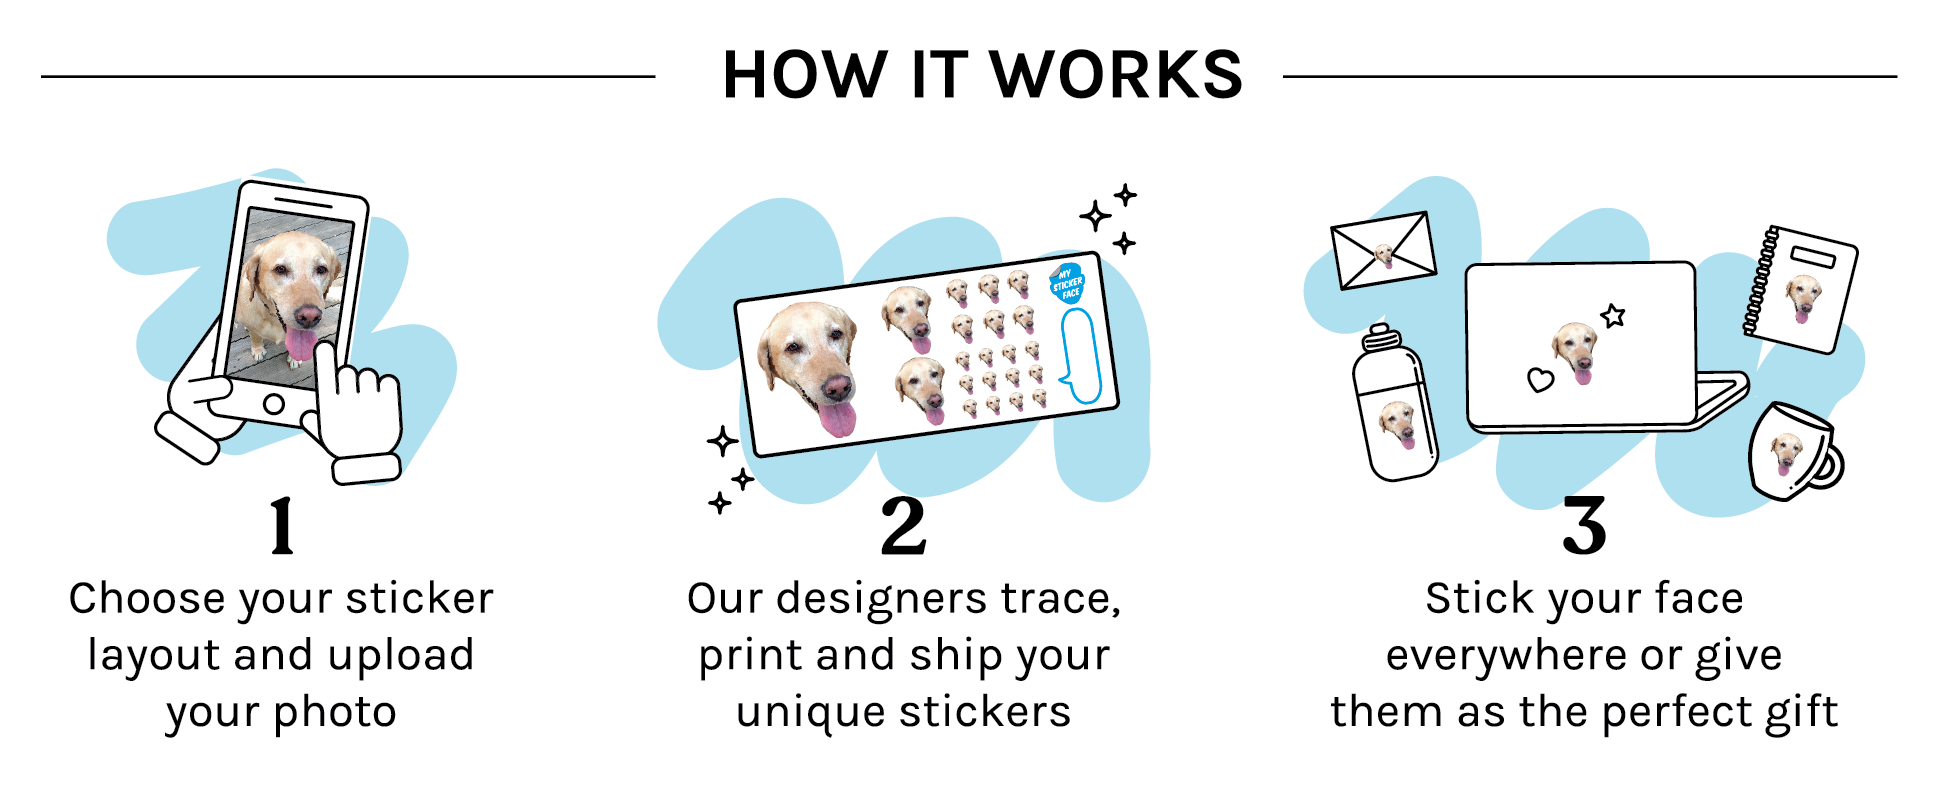 Vinyl stickers you can stick anywhere